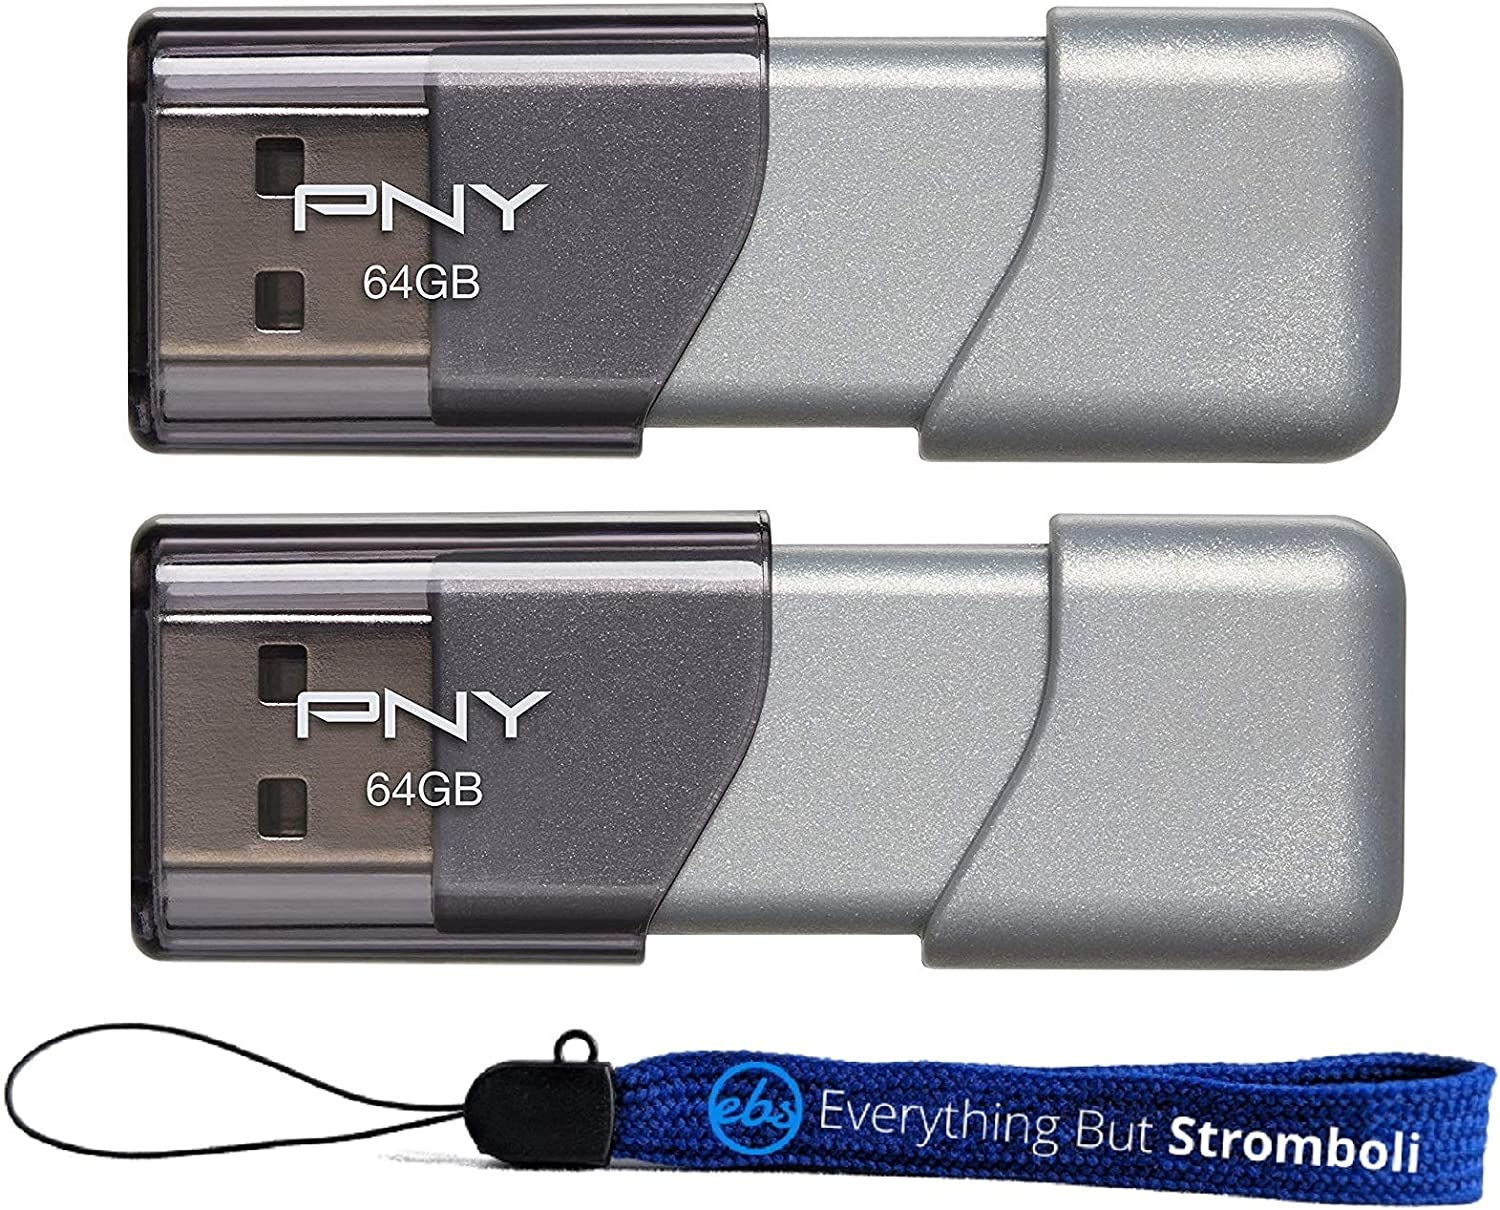 PNY USB 3.0 Flash Drive Elite Turbo Attache 3 Two Pack Bundle with (1) Everything But Stromboli Lanyard (64GB 2 Pack, Gray)